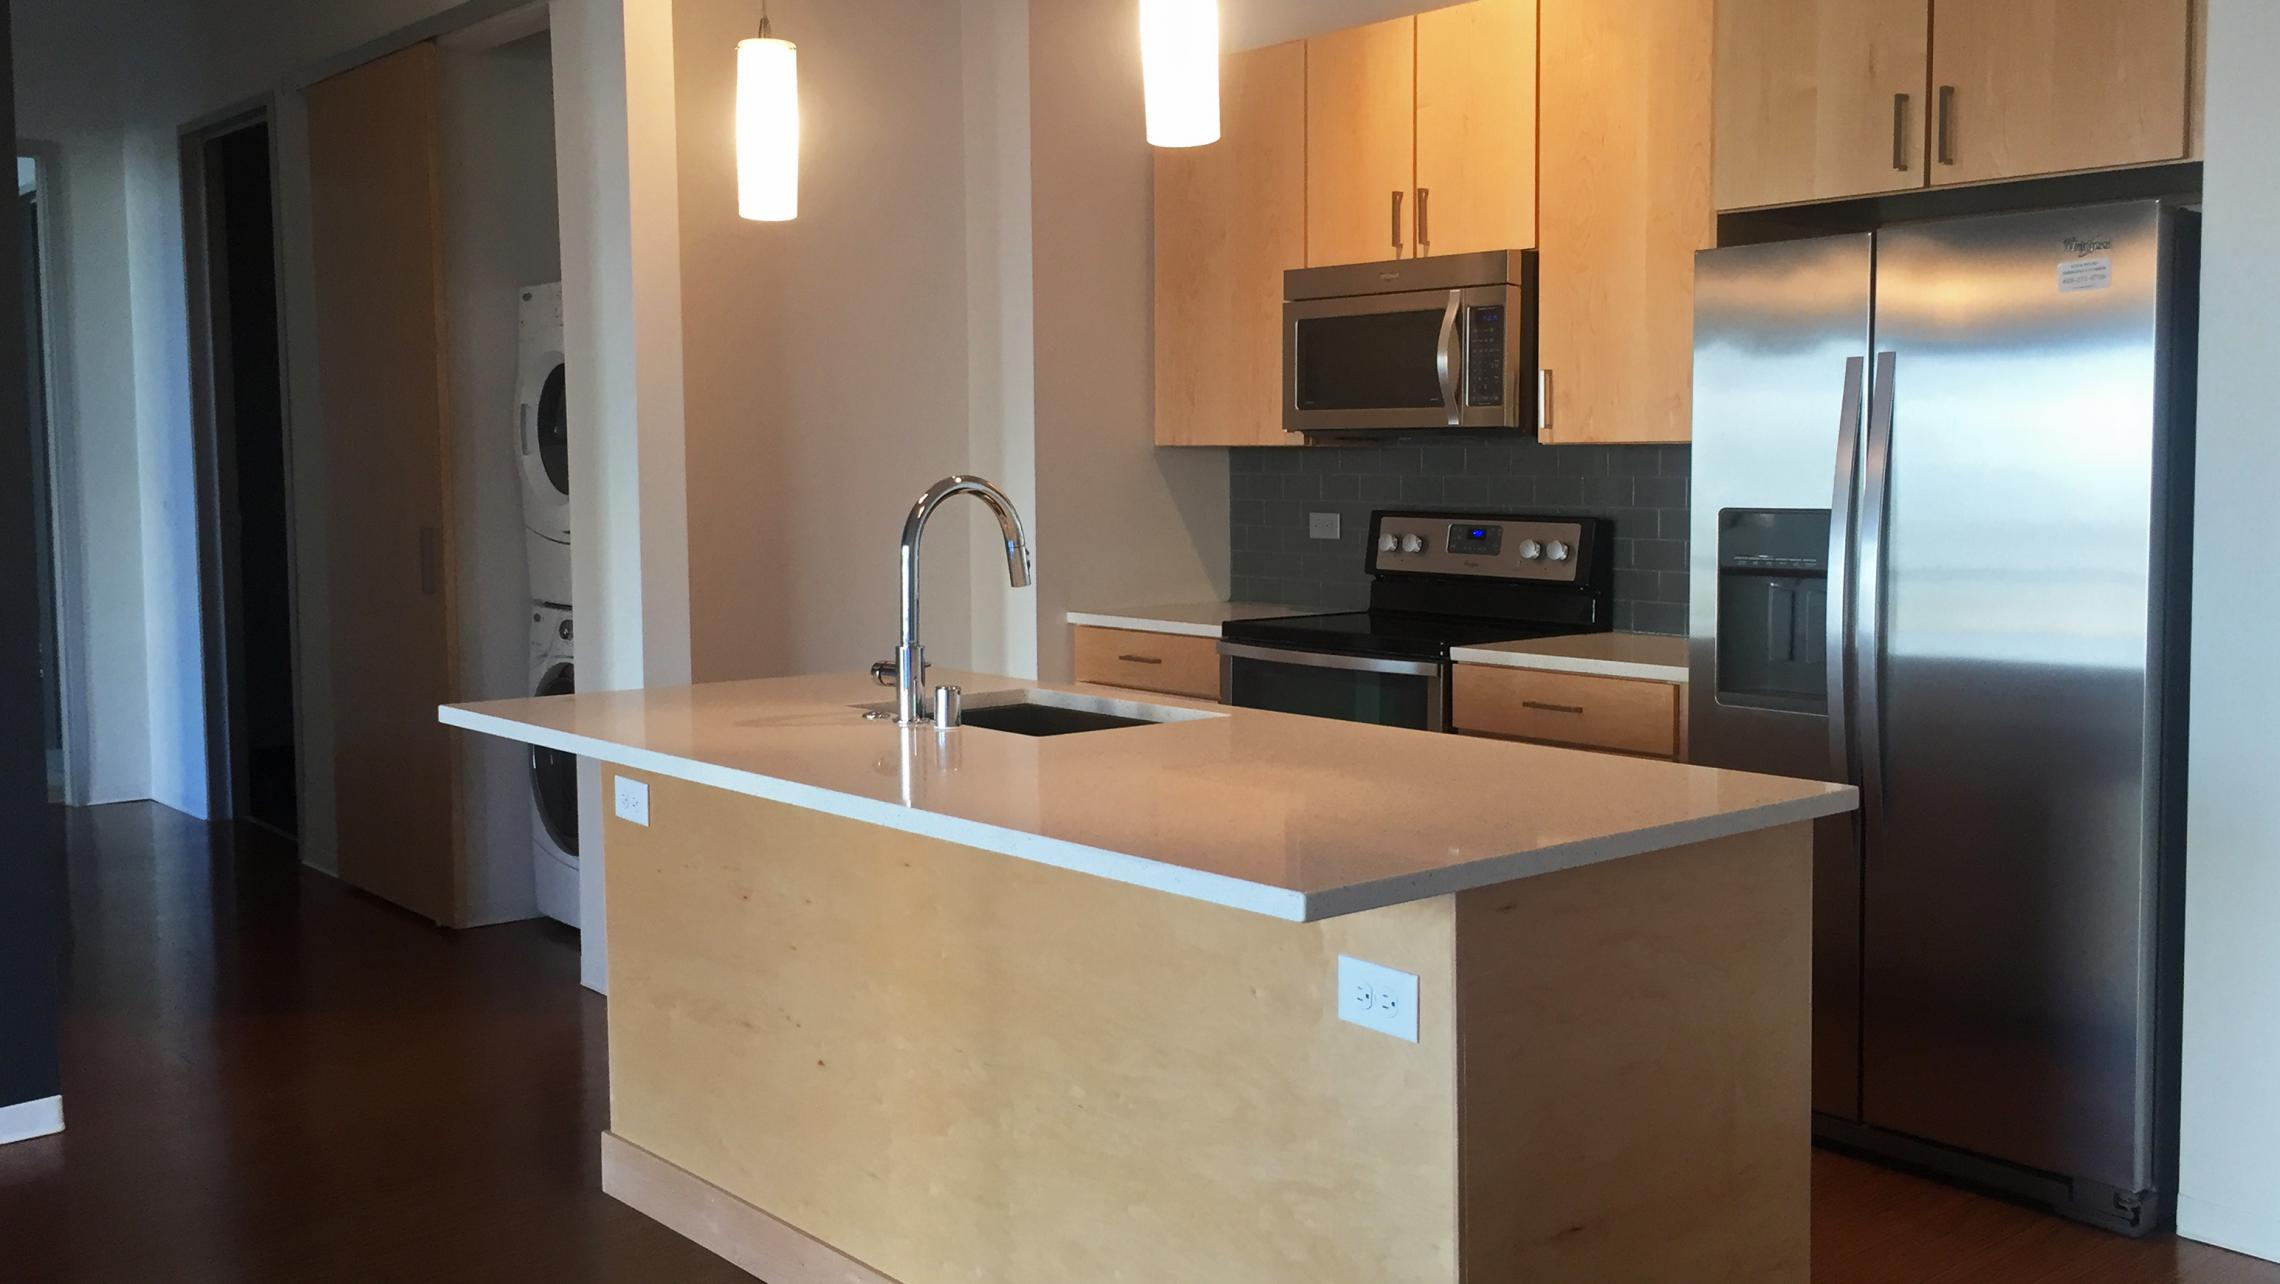 ULI Seven27 Apartment 536 - Kitchen and In-Unit Washer / Dryer